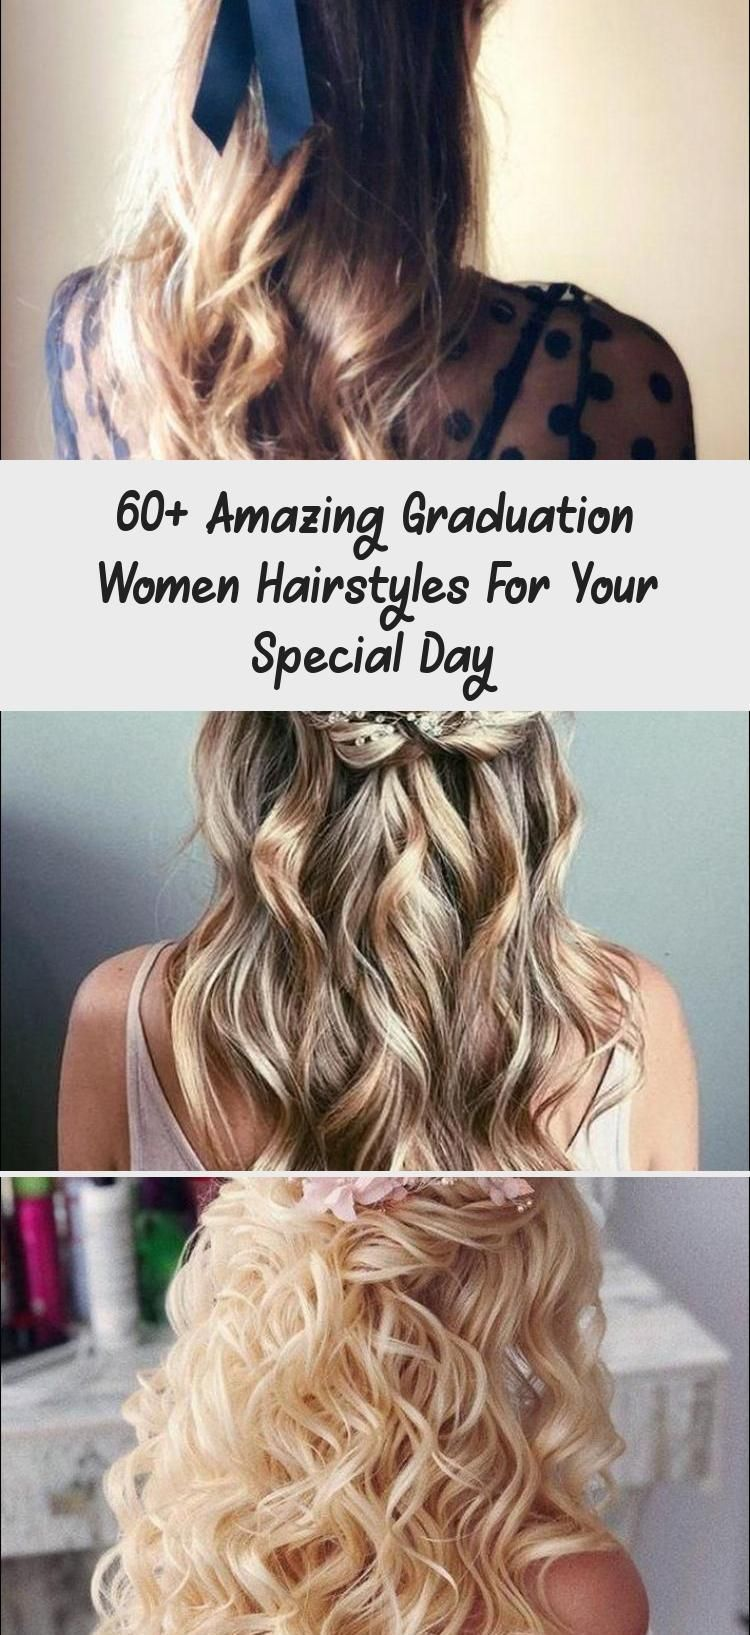 60+ Amazing Graduation Women Hairstyles For Your Special Day - Galafashion / Women Outfits - Graduation pictures,high school Graduation,Graduation party ideas,Graduation balloons